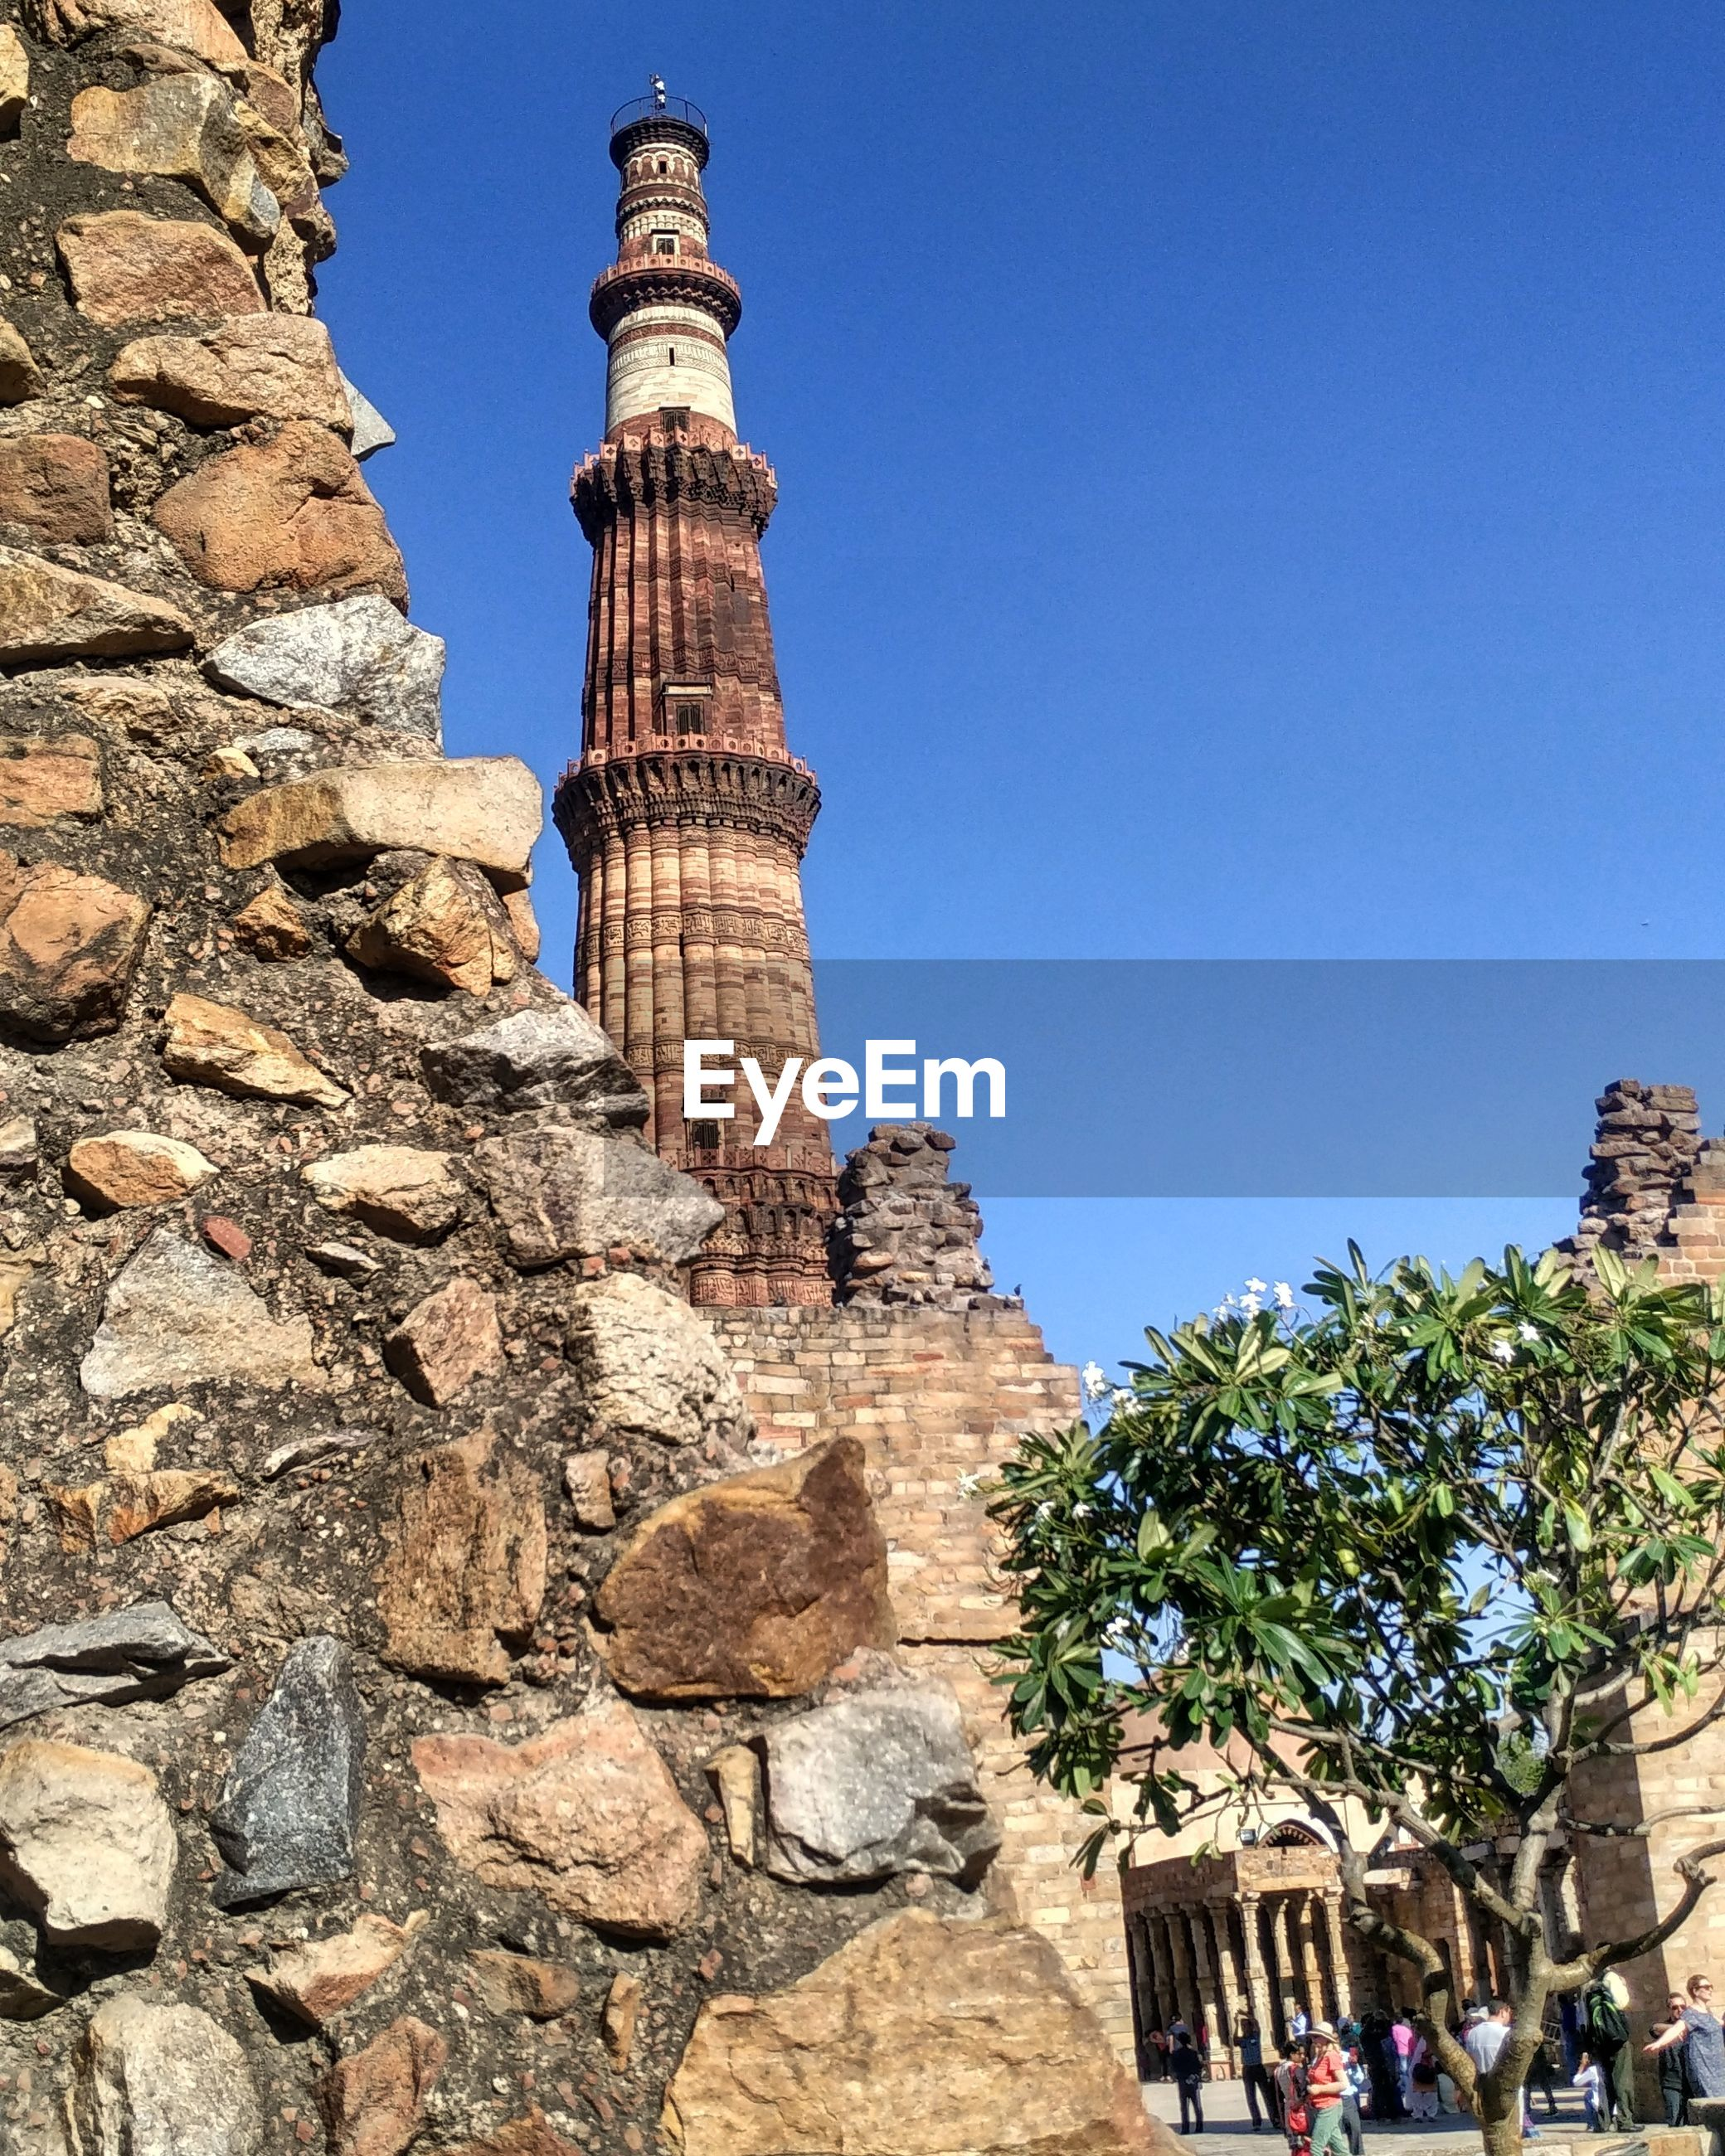 clear sky, architecture, built structure, history, building exterior, famous place, ancient, low angle view, tourism, travel destinations, blue, old ruin, the past, travel, ancient civilization, international landmark, copy space, sunlight, old, tourist